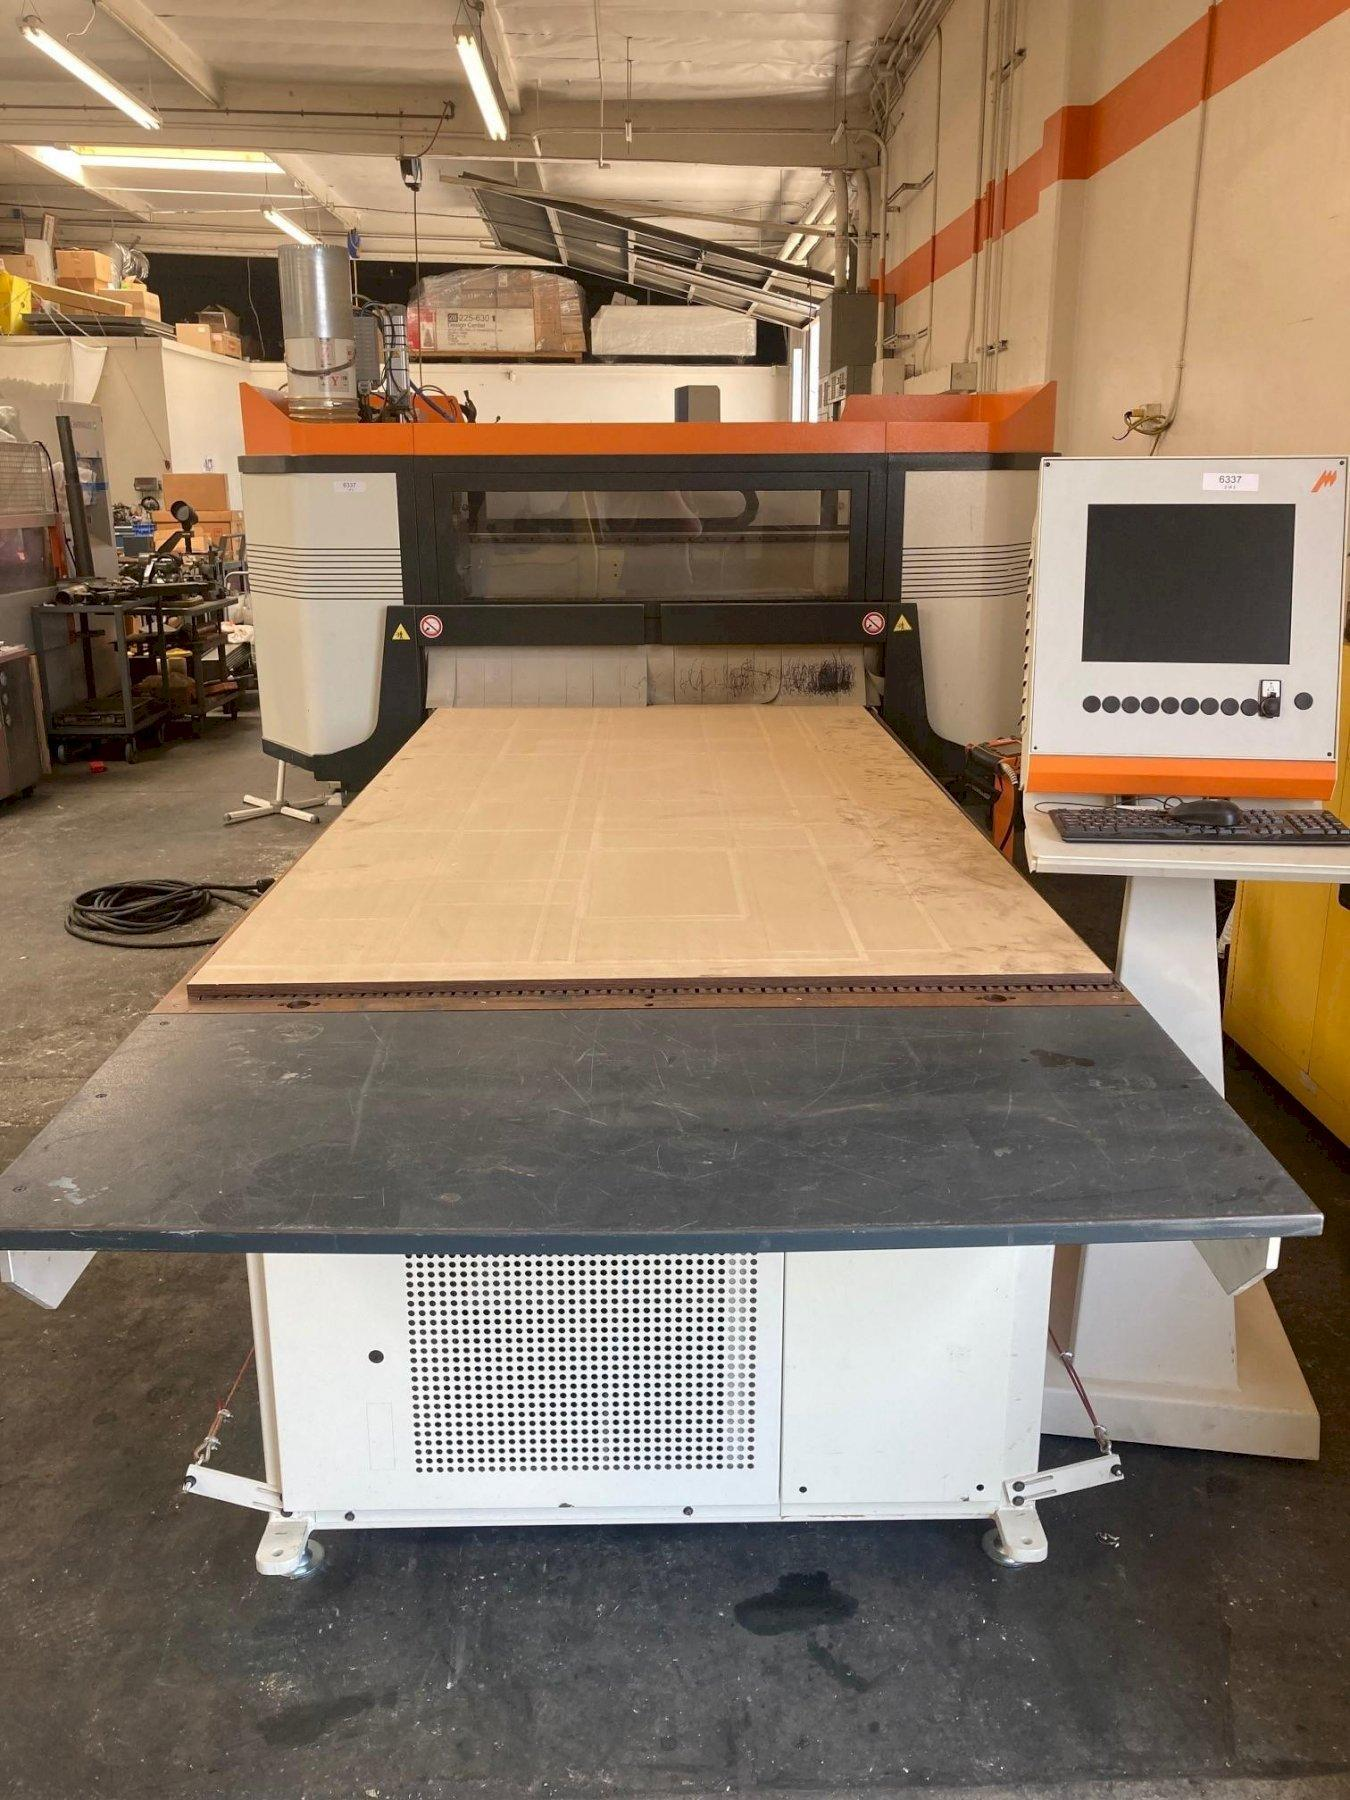 Busellato Easy Jet 4.8 B 4' x 8' CNC Router 2016 With: 7-Position Drill Bank, 8-Position Tool Rack, and Multifunctional Phenolic Top.